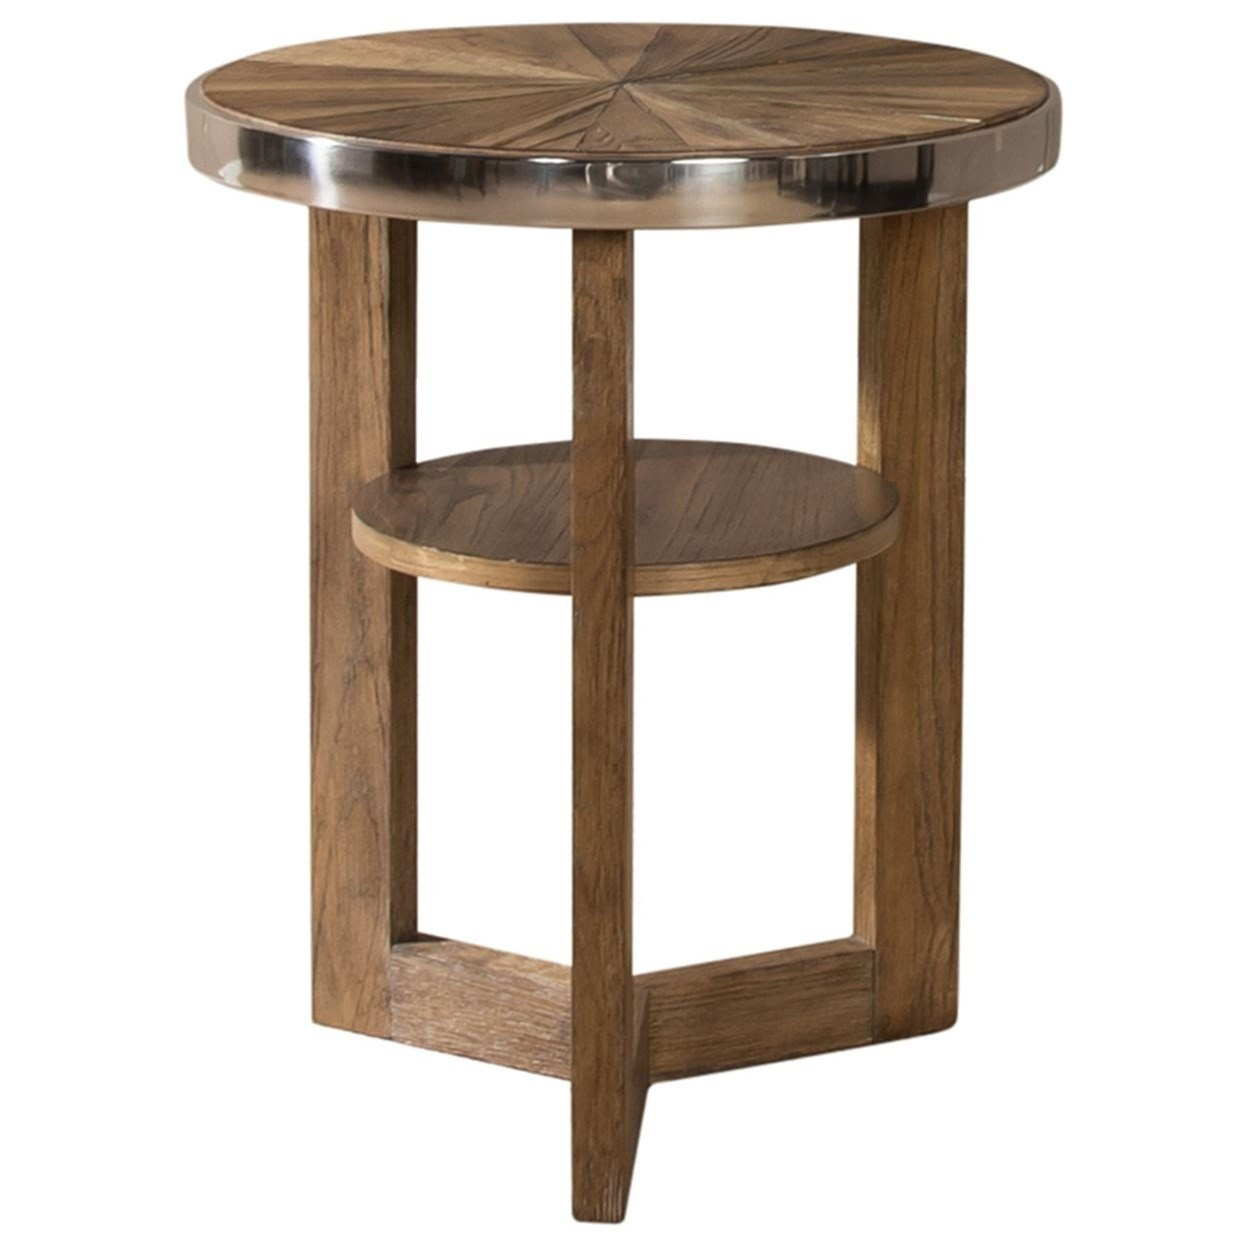 Round Chair Side Table with Sunburst Top and 1 Shelf